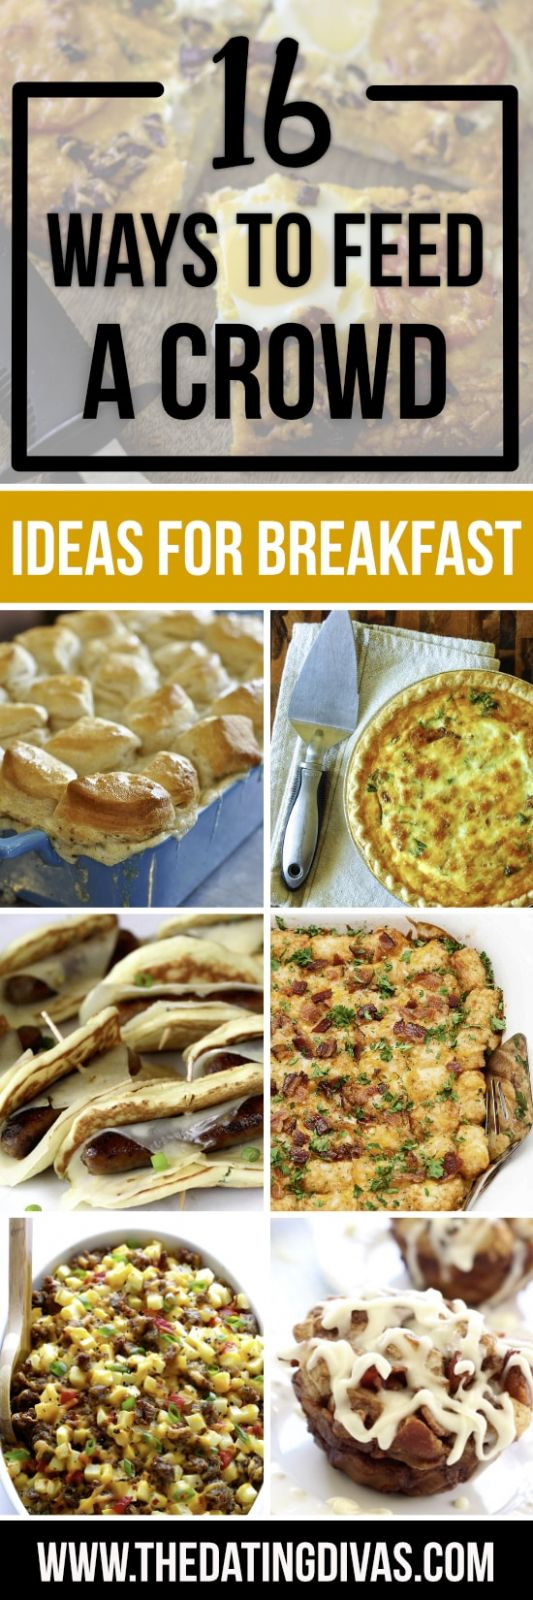 Easy Ways to Feed a Crowd - From The Dating Divas - Breakfast Recipes For A Crowd